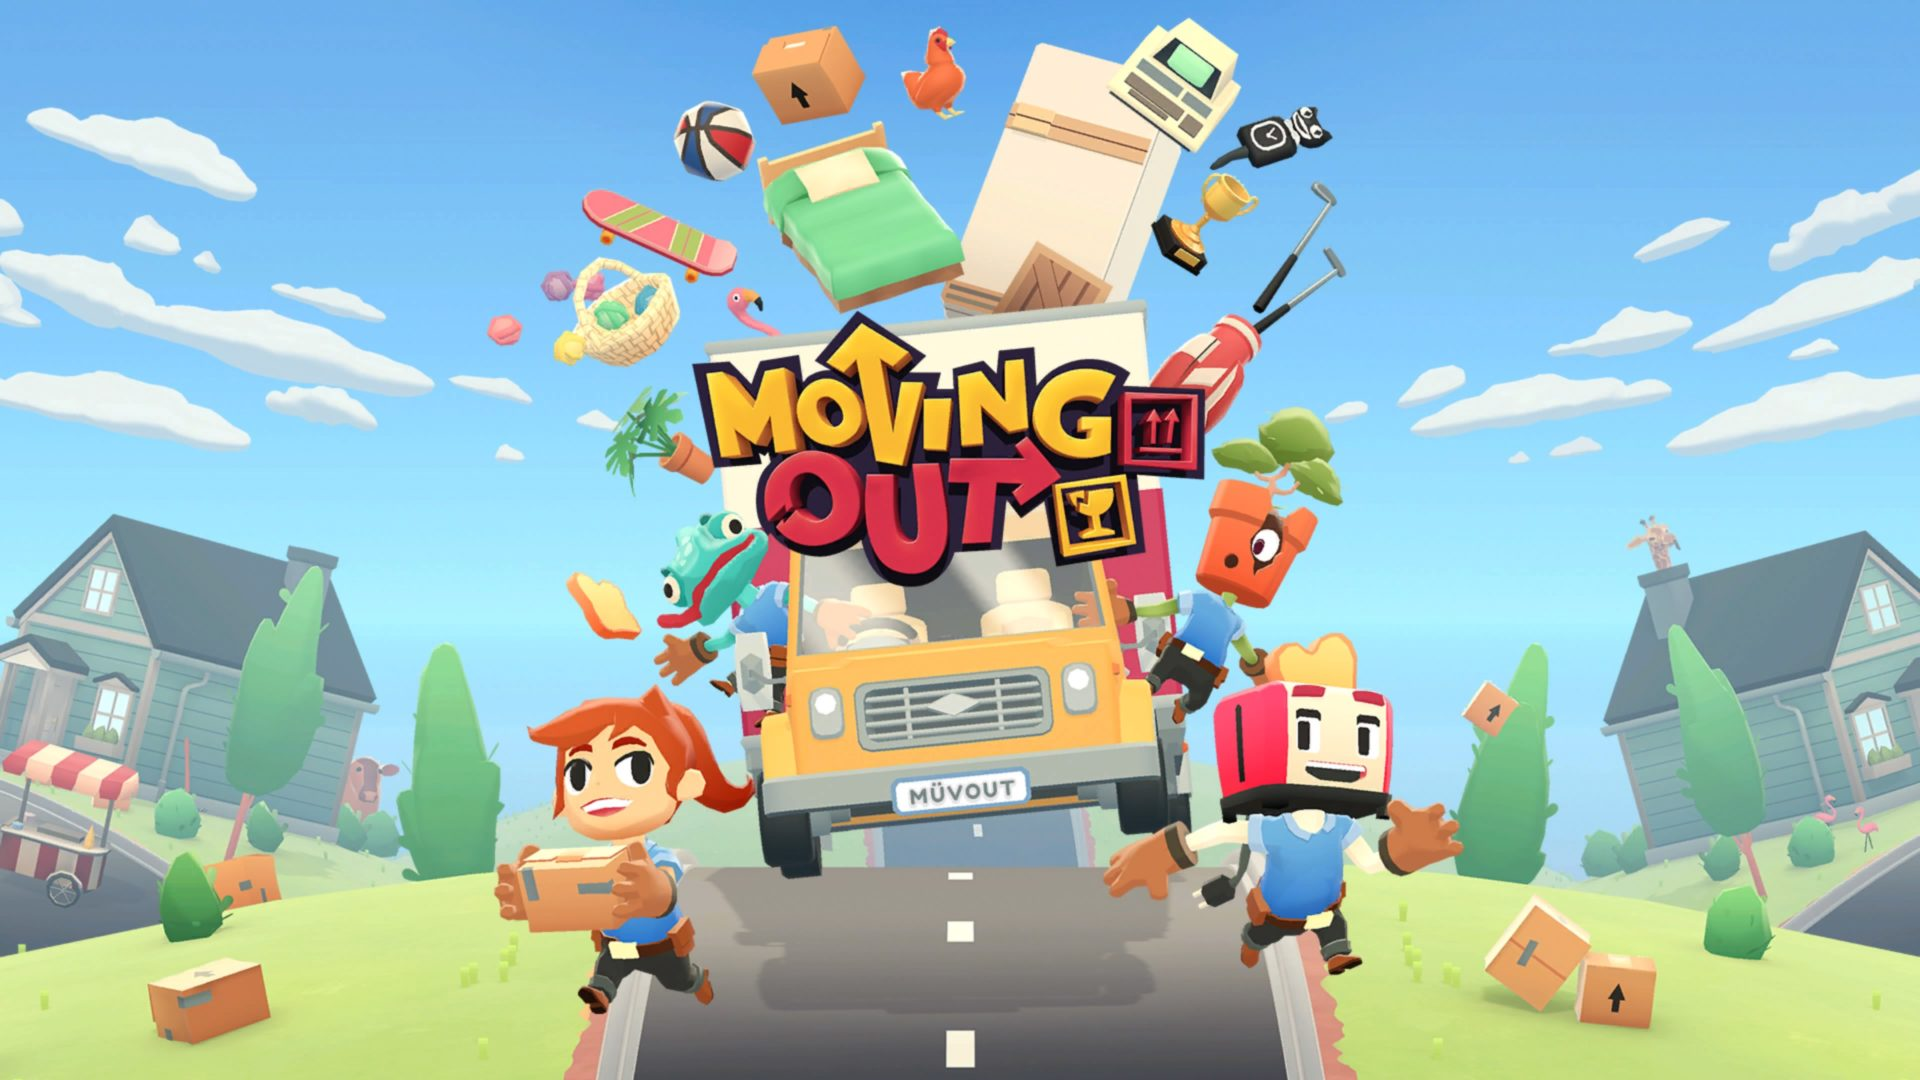 Moving Out Critic Review